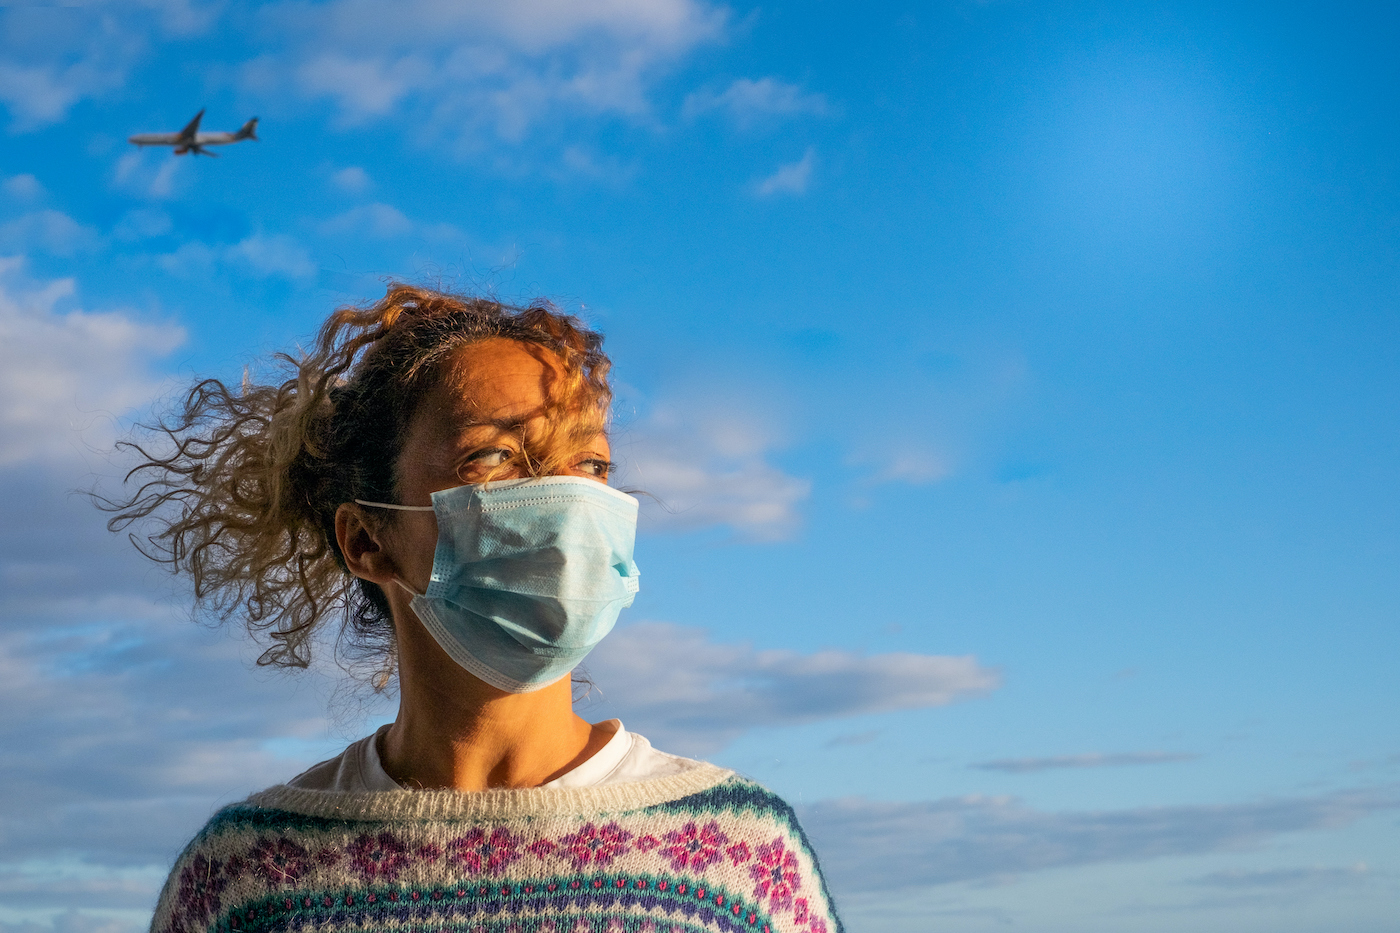 Thumbnail for What to Know About Eye Health While Wearing a Mask, According to Top Health Expert